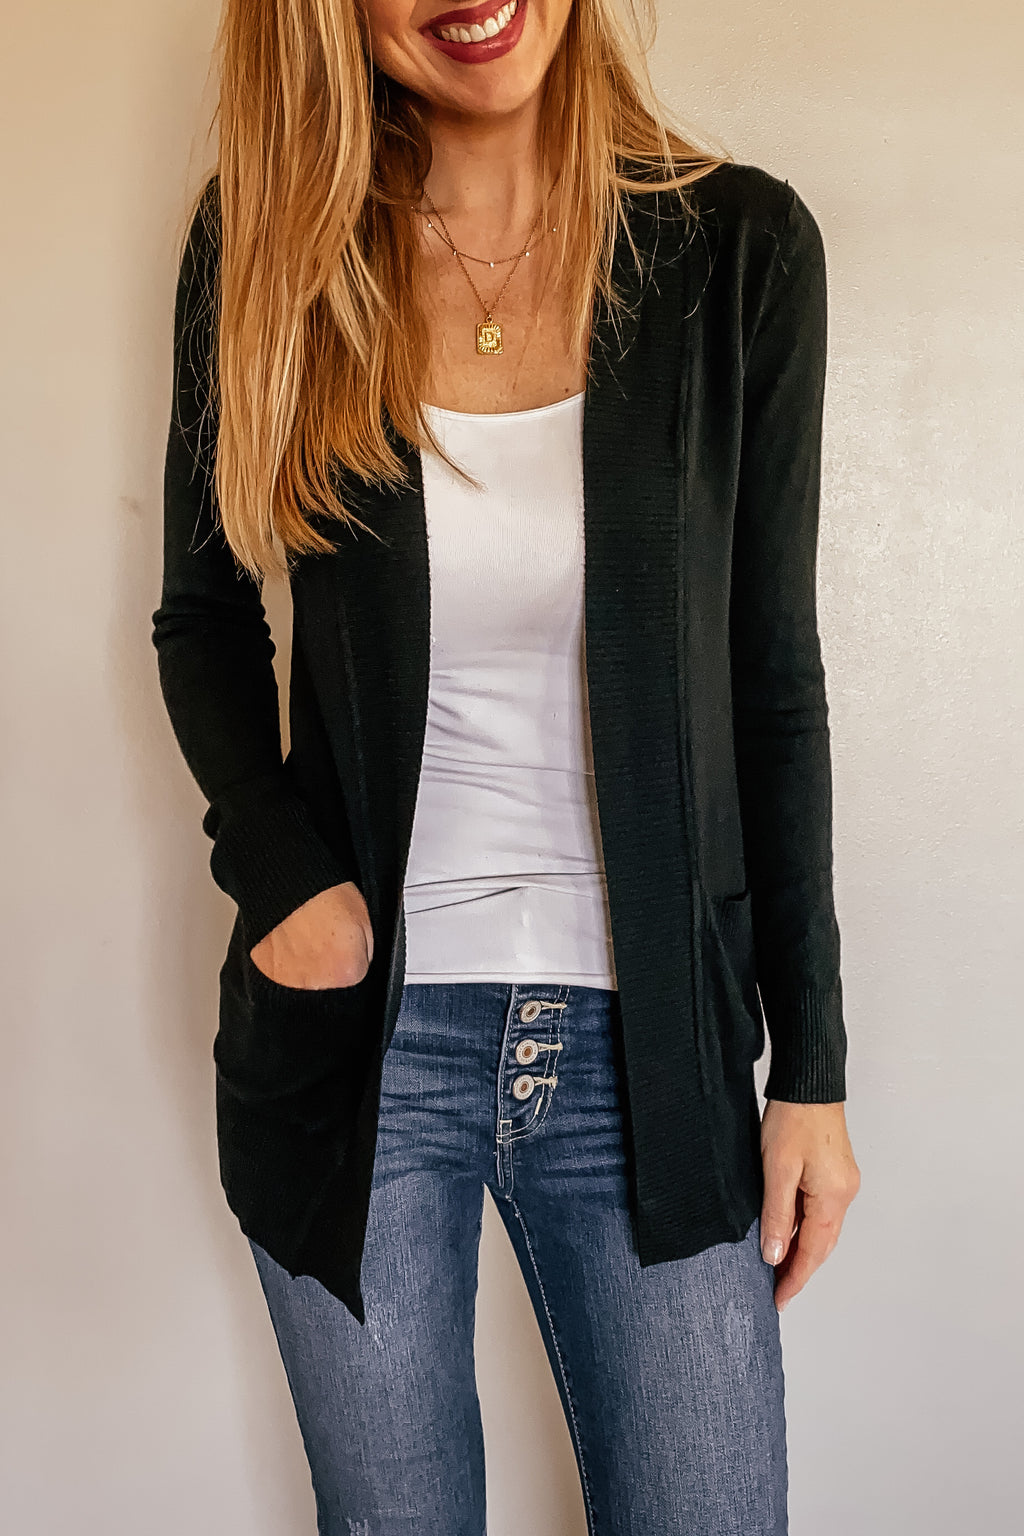 The Phoebe Cardigan in Black